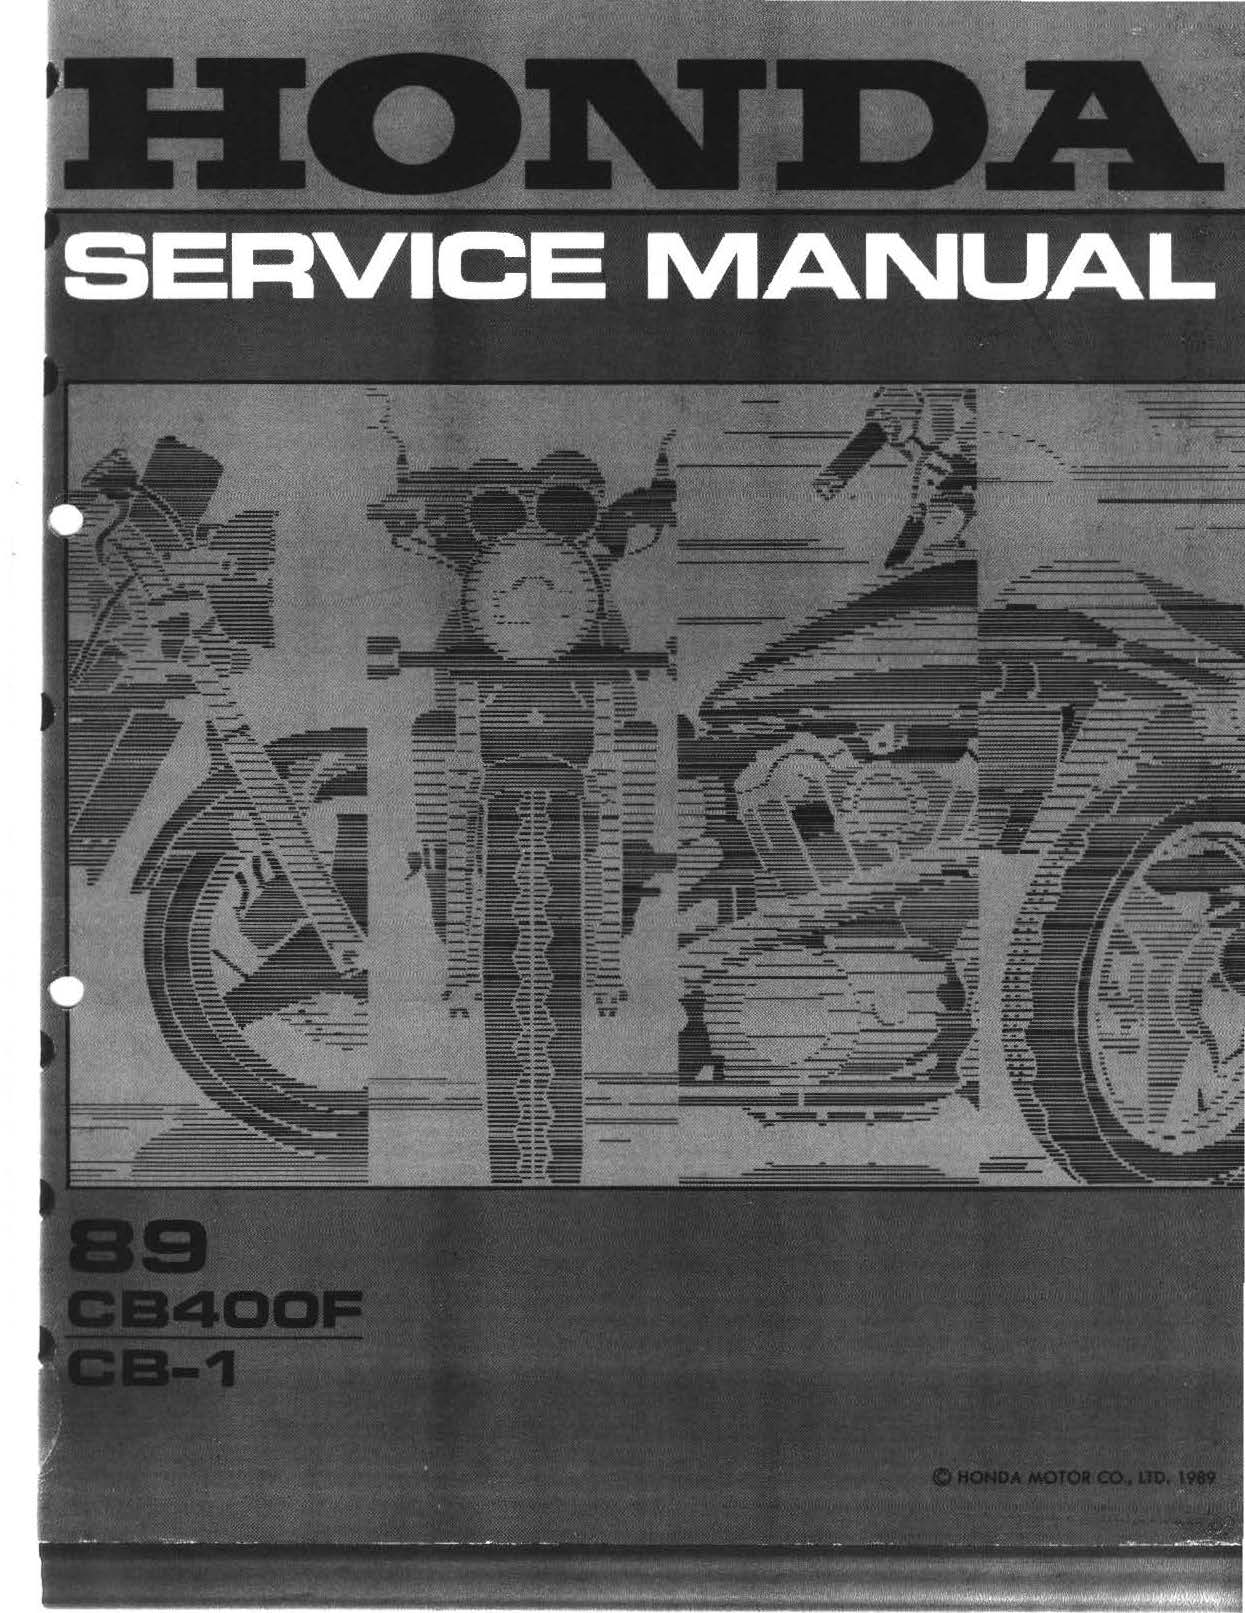 Workshop manual for Honda CB1 (1989)